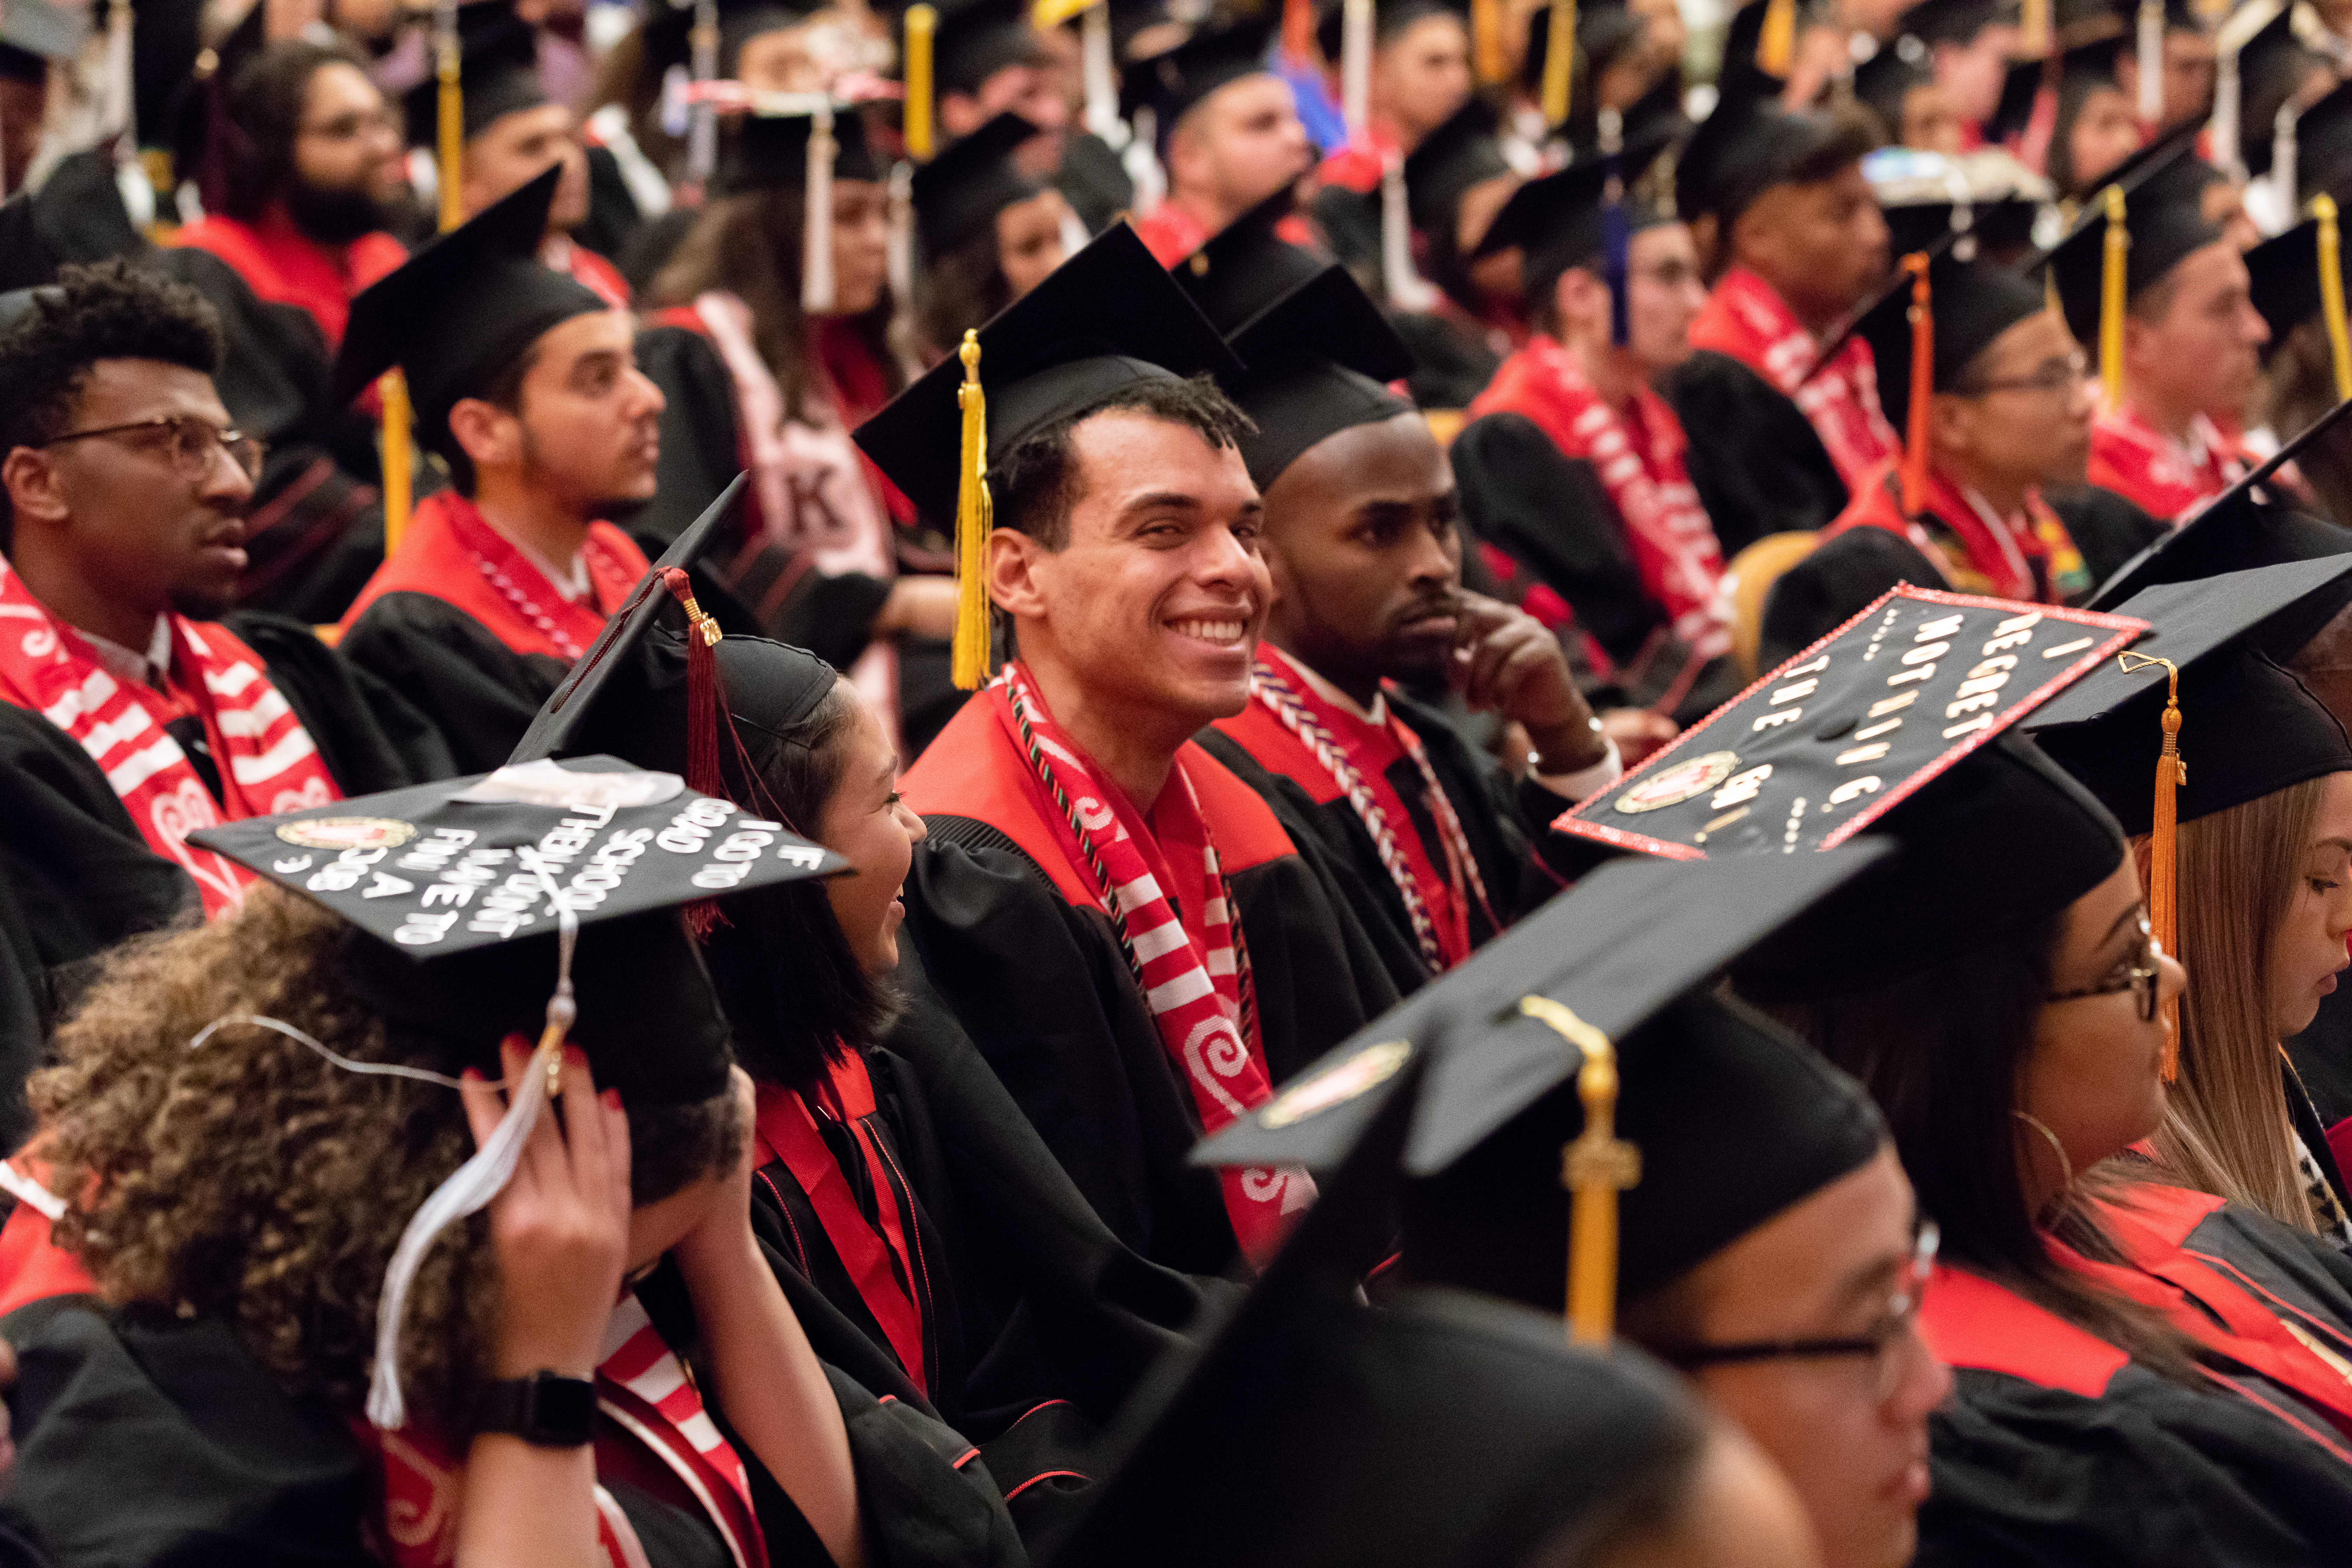 Graduating seniors in caps and gowns sit in a large hall facing the stage.